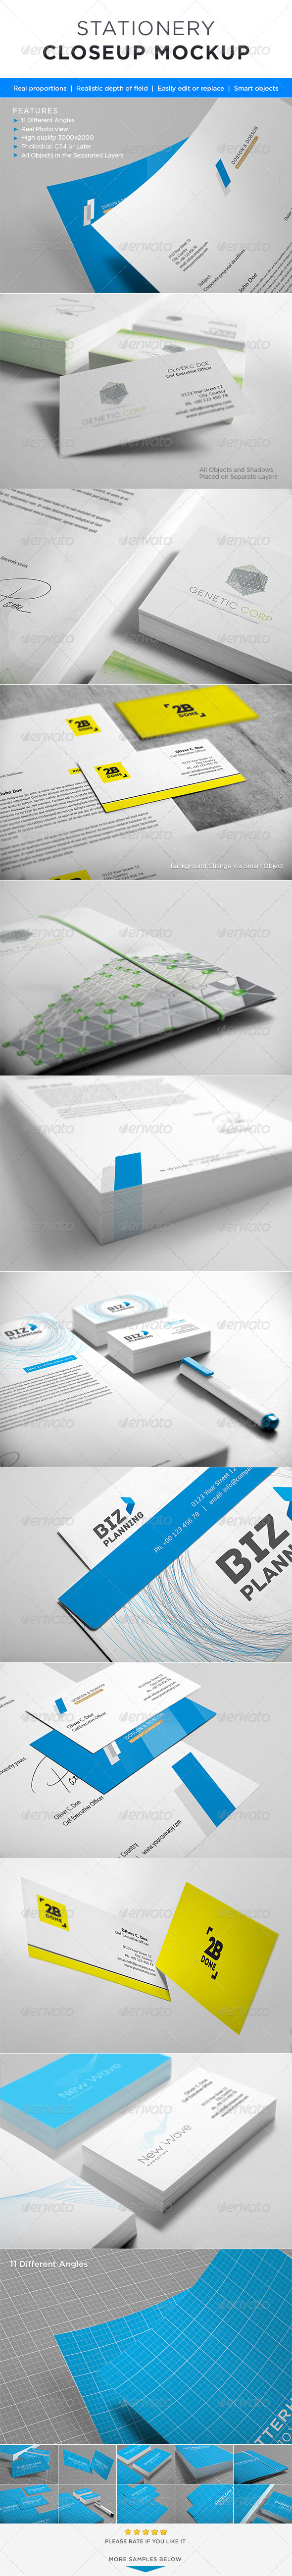 Photorealistic Stationery Closeup Mock-up - Stationery Print